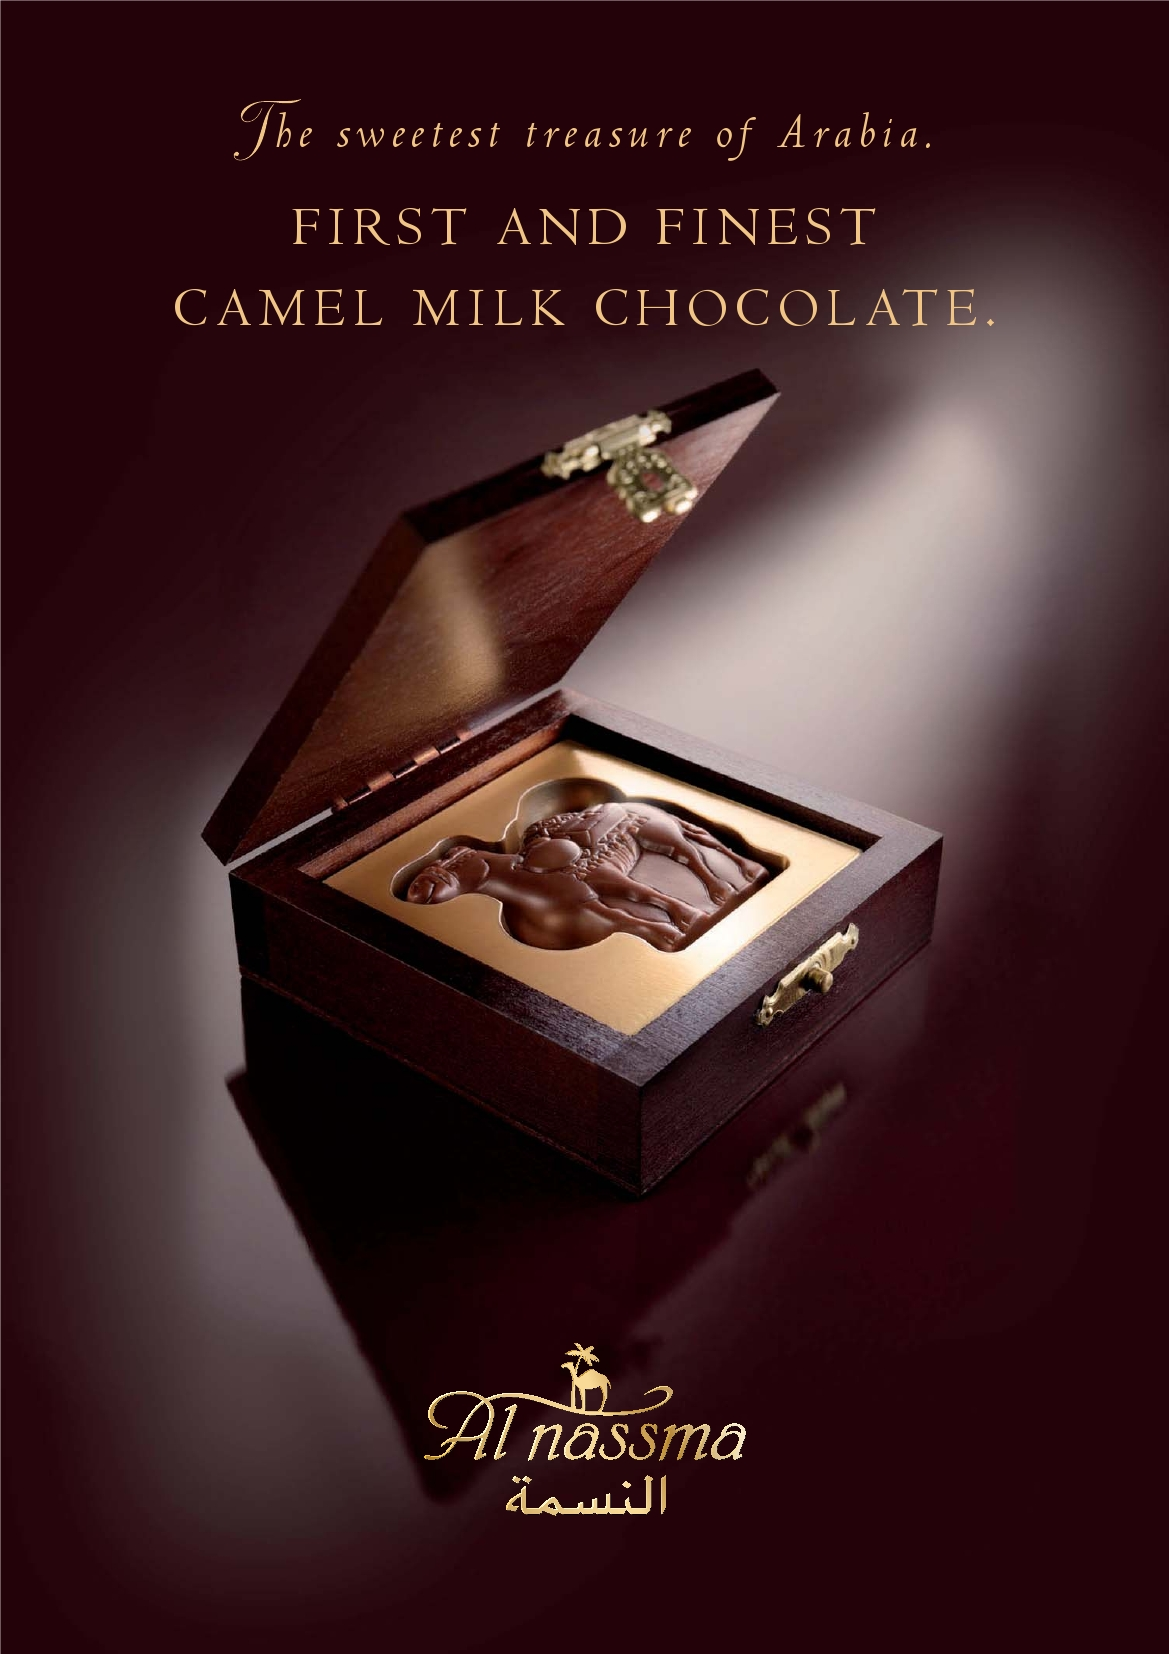 Al Nassma Camel Milk Chocolate Ad